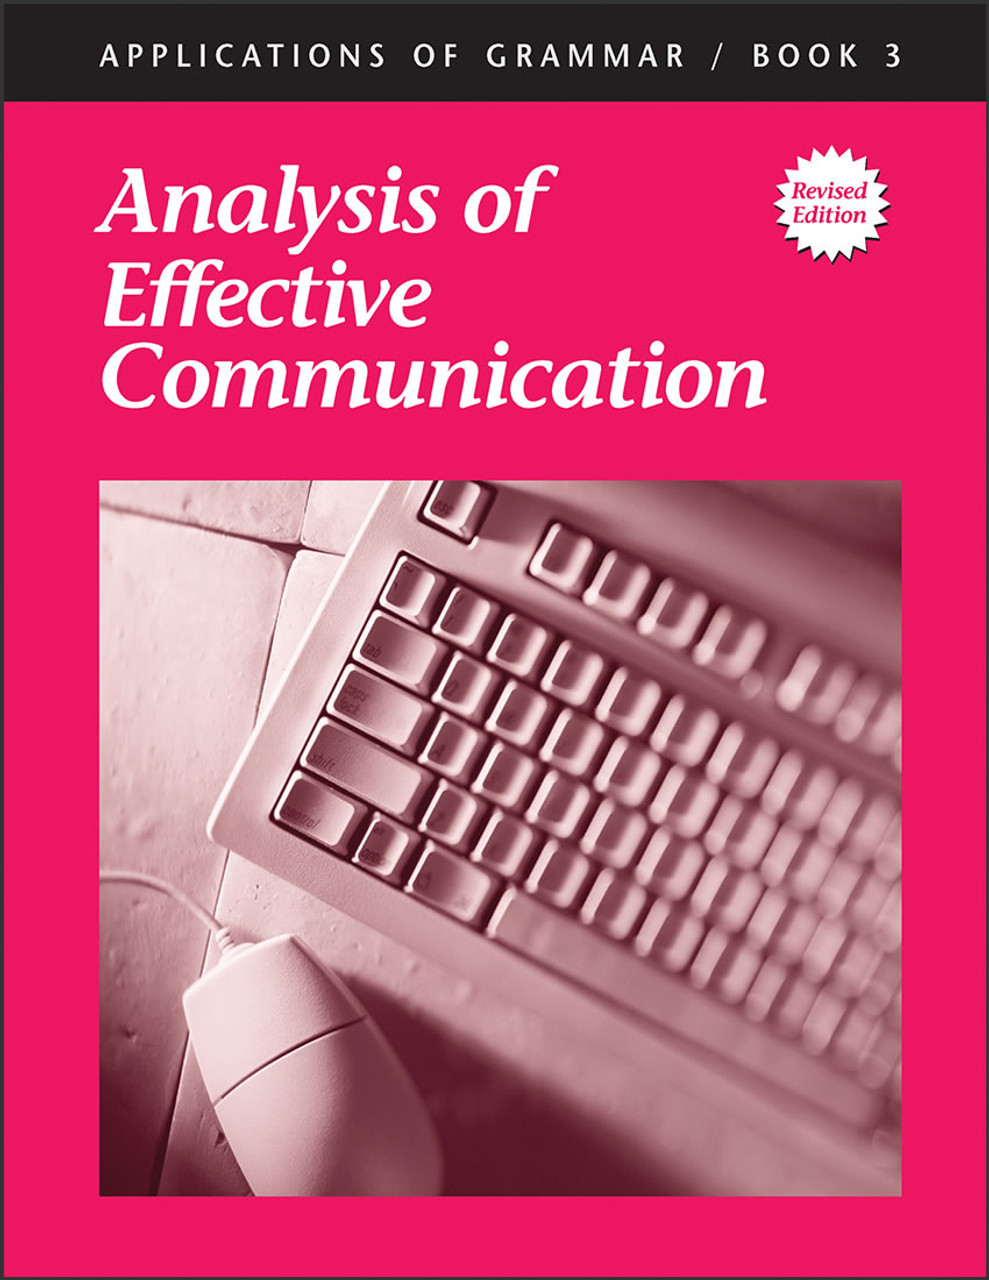 Applications of Grammar 3: Analysis of Effective Communication, Revised edition